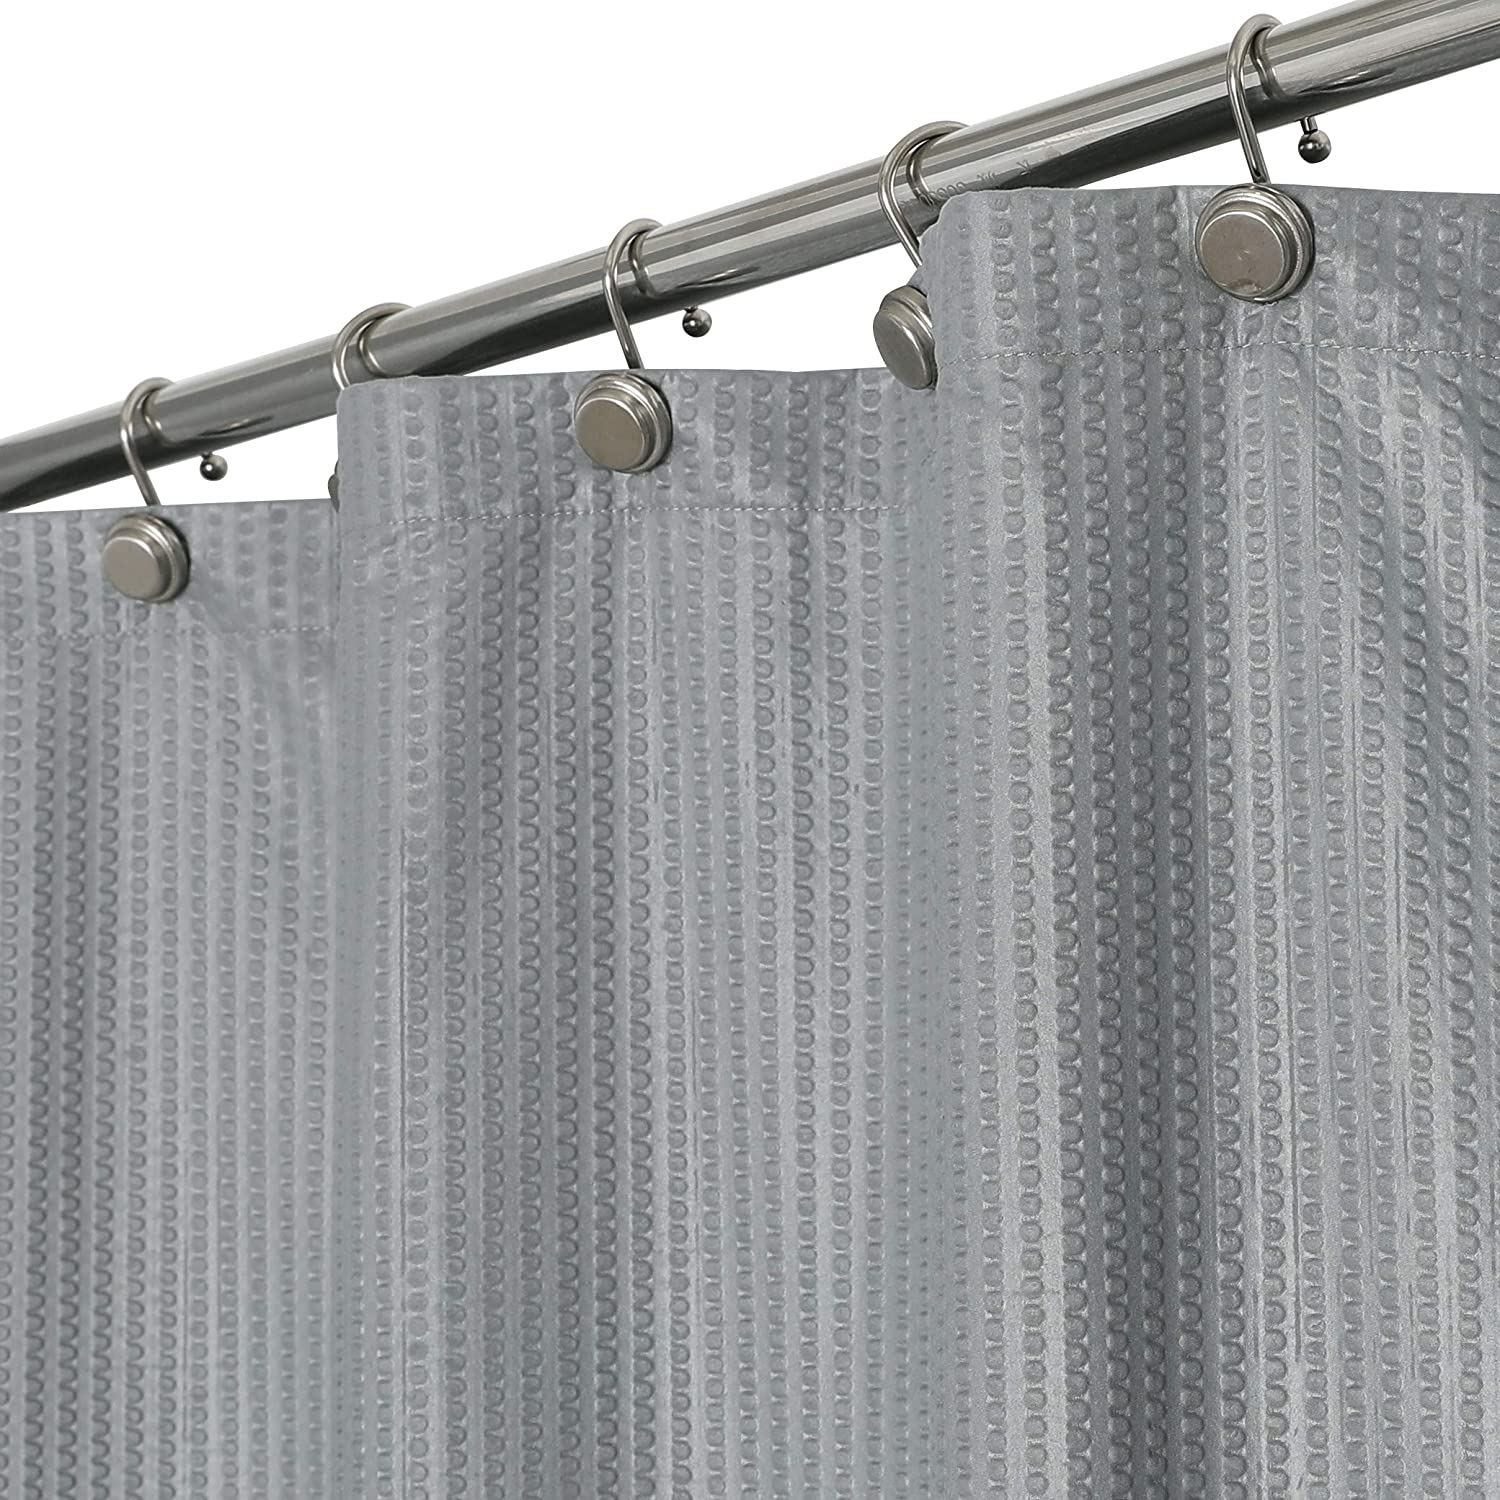 WEST LAKE Fabric Shower Curtain Grey Bathroom Decor Button Holes Design Water Resistant Hotel Luxury Spa Embossed Shower Curtain,Machine Washable,Gray/Grey, 70x78 inch